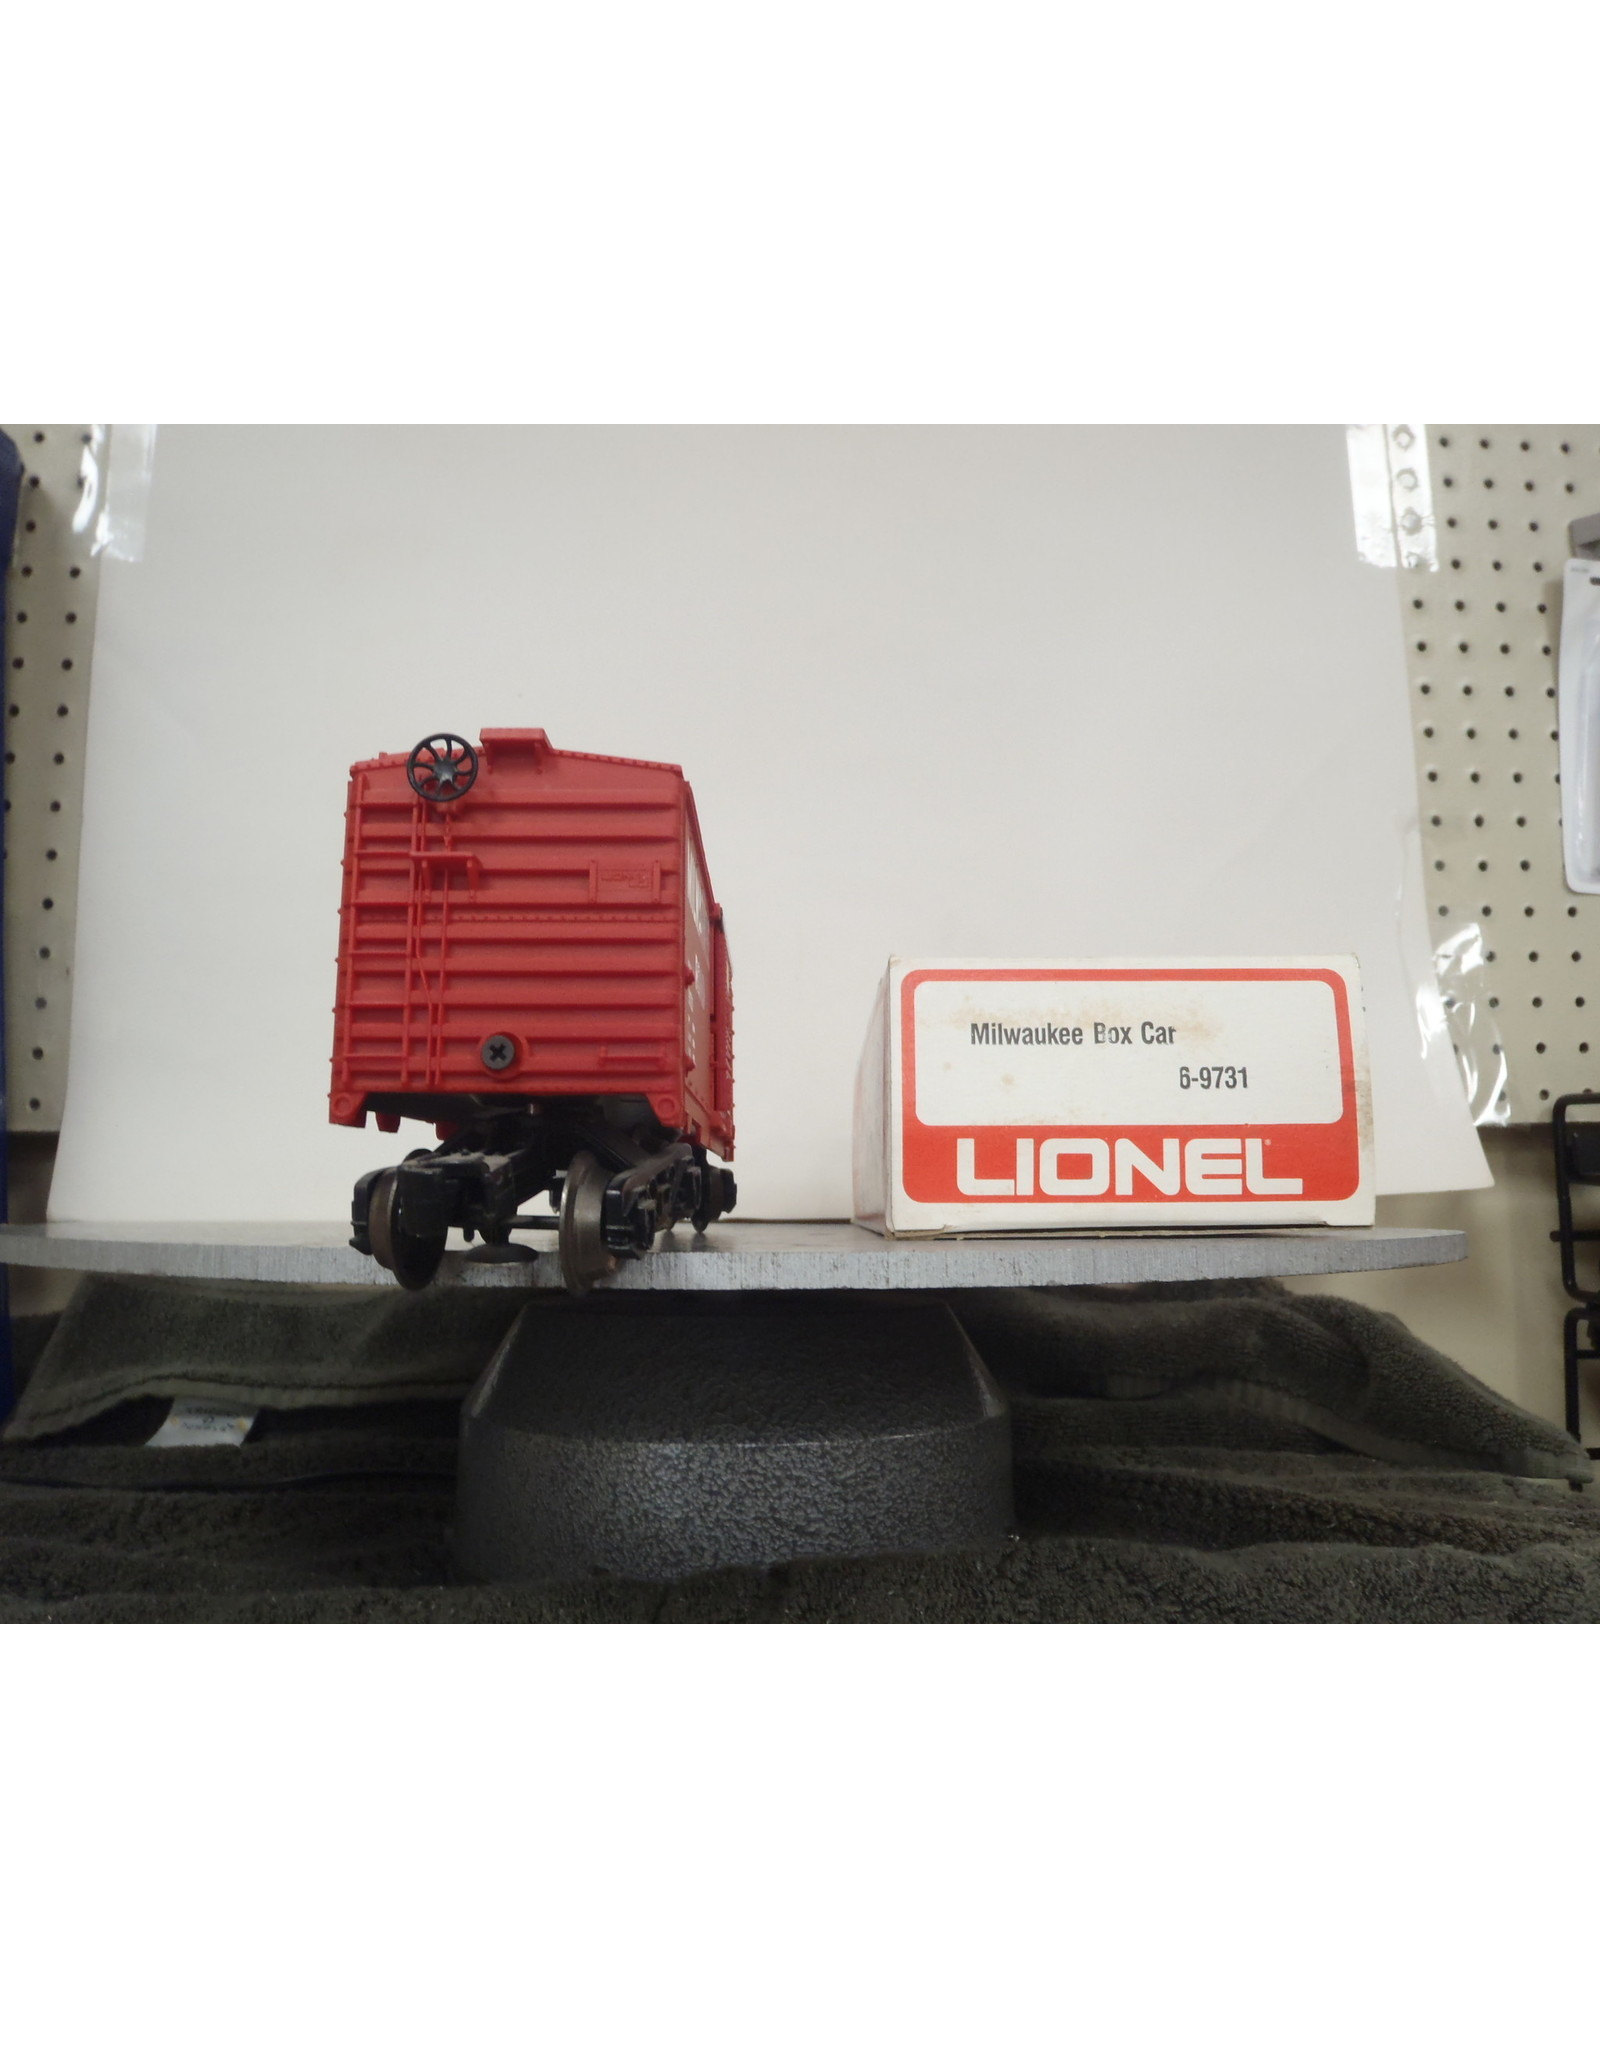 Lionel Boxcar Milwaukee Rd 9731